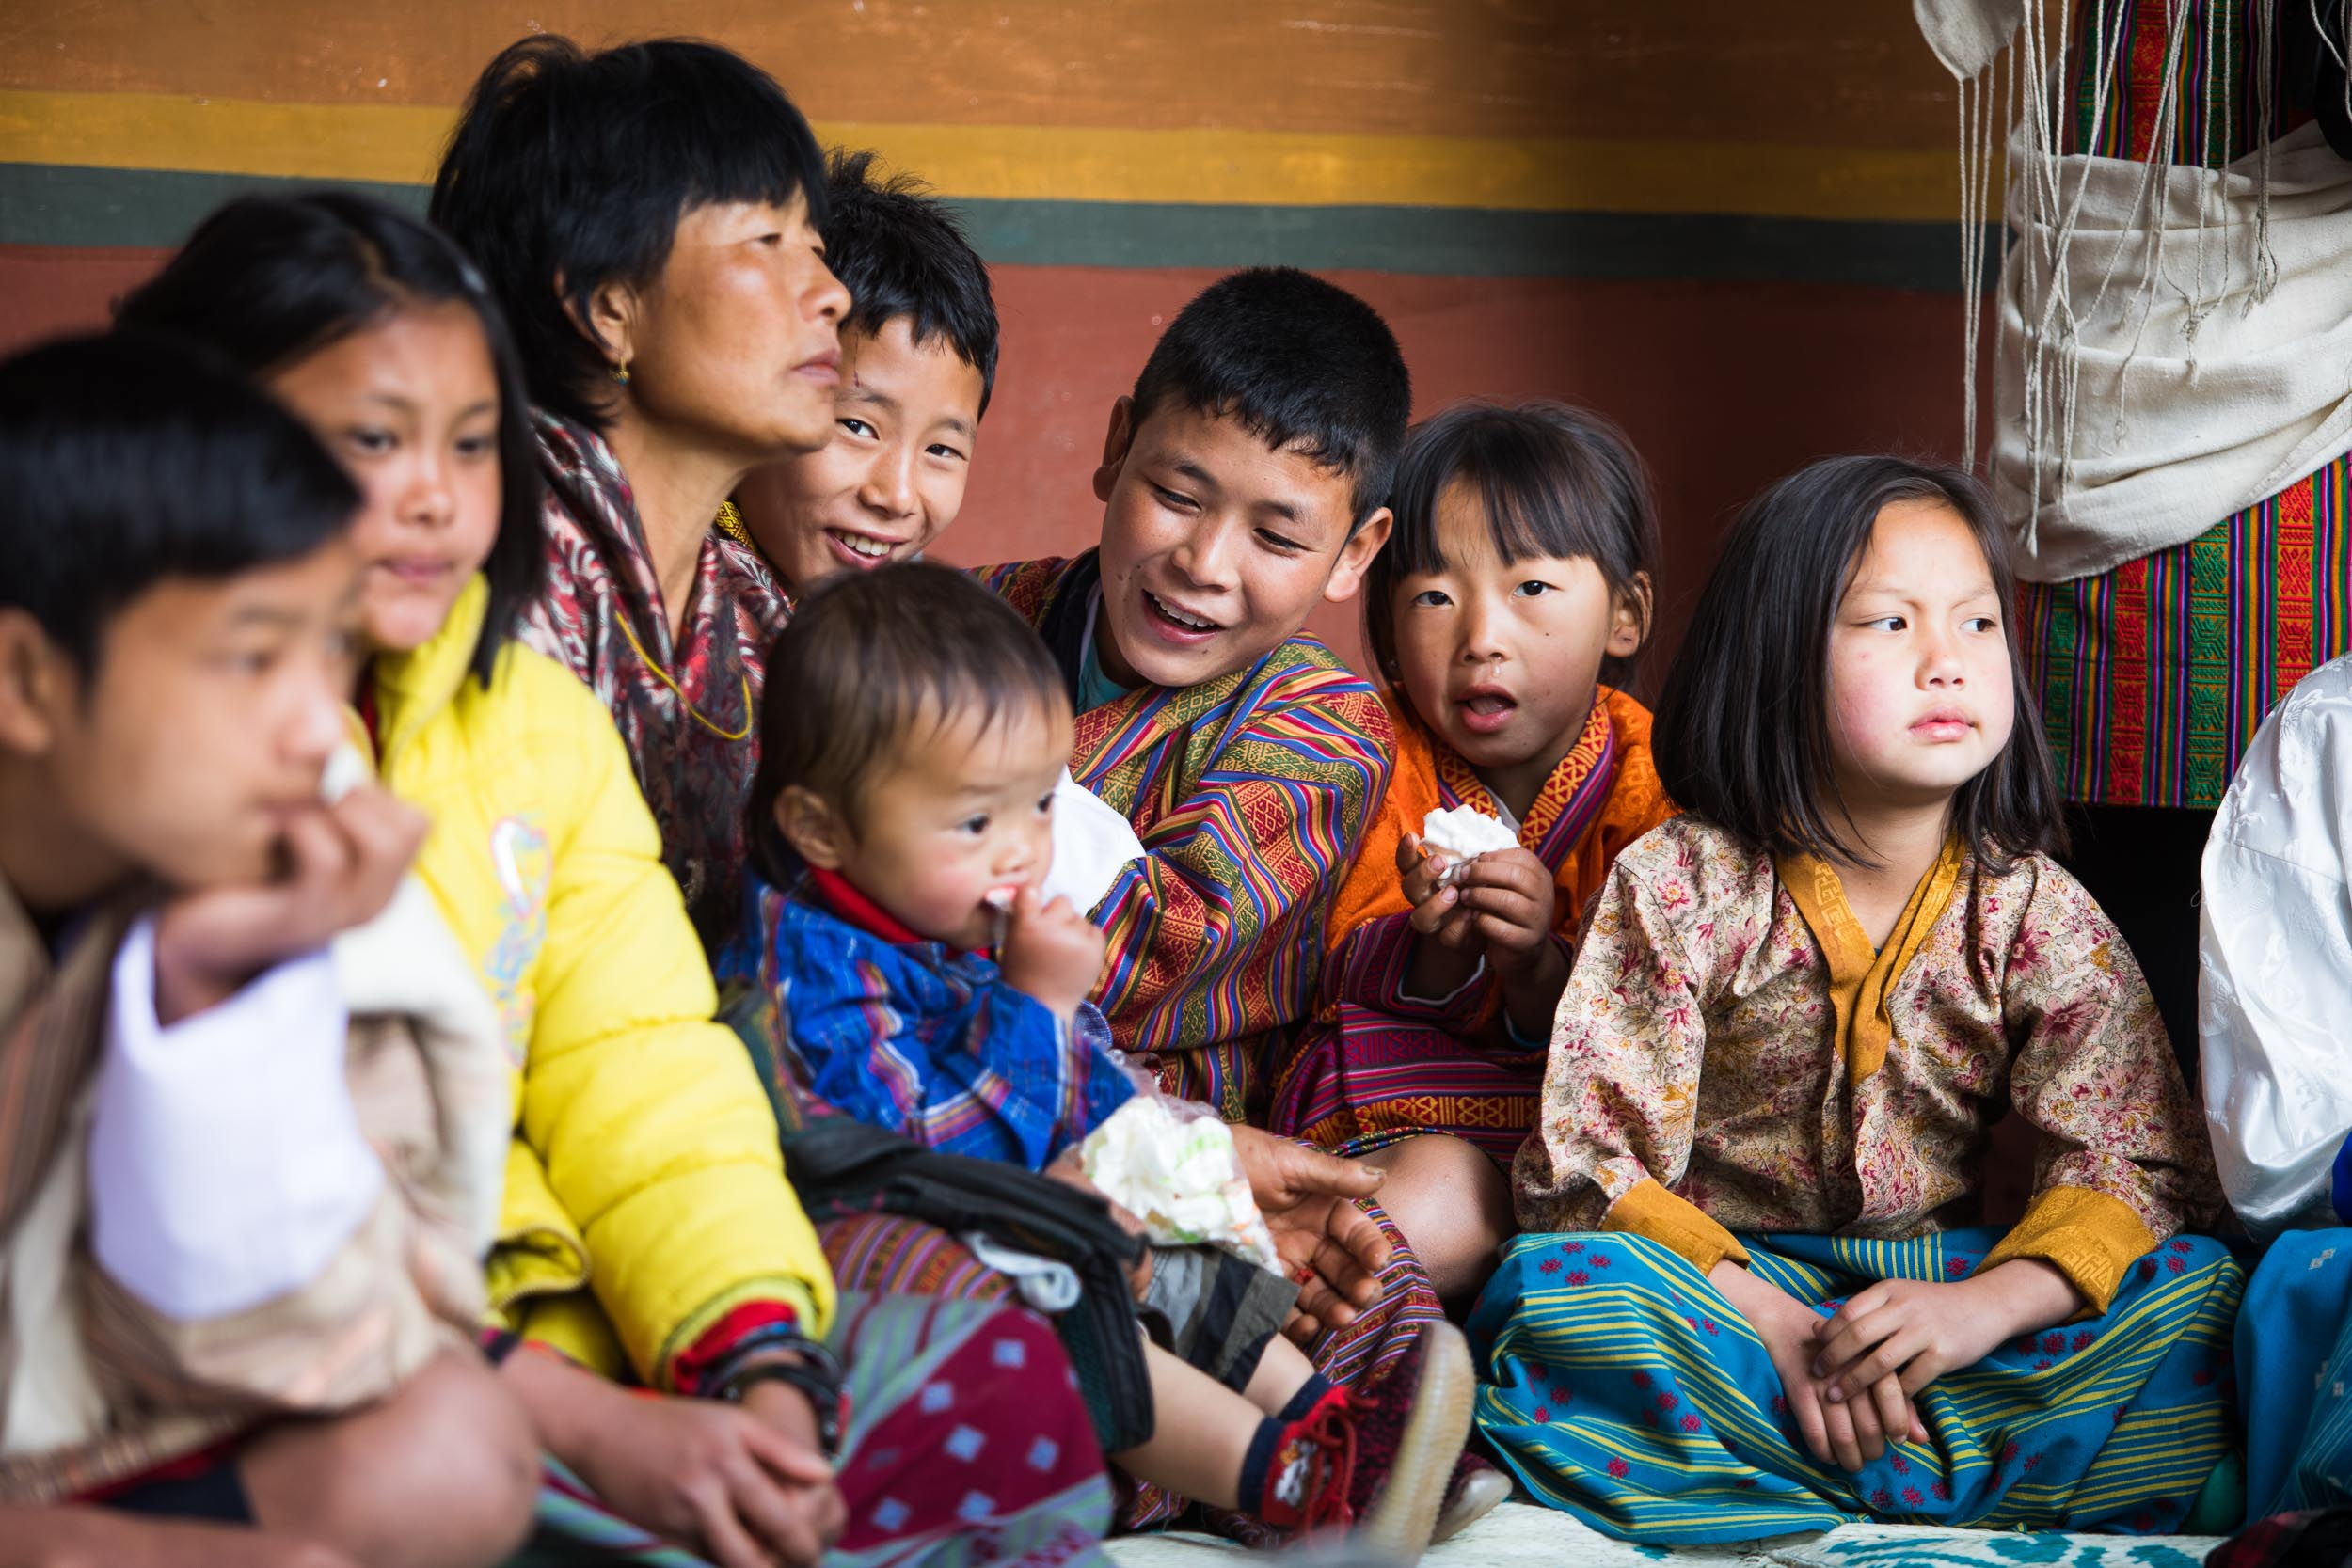 Bhutan:Photographed by Jed Share